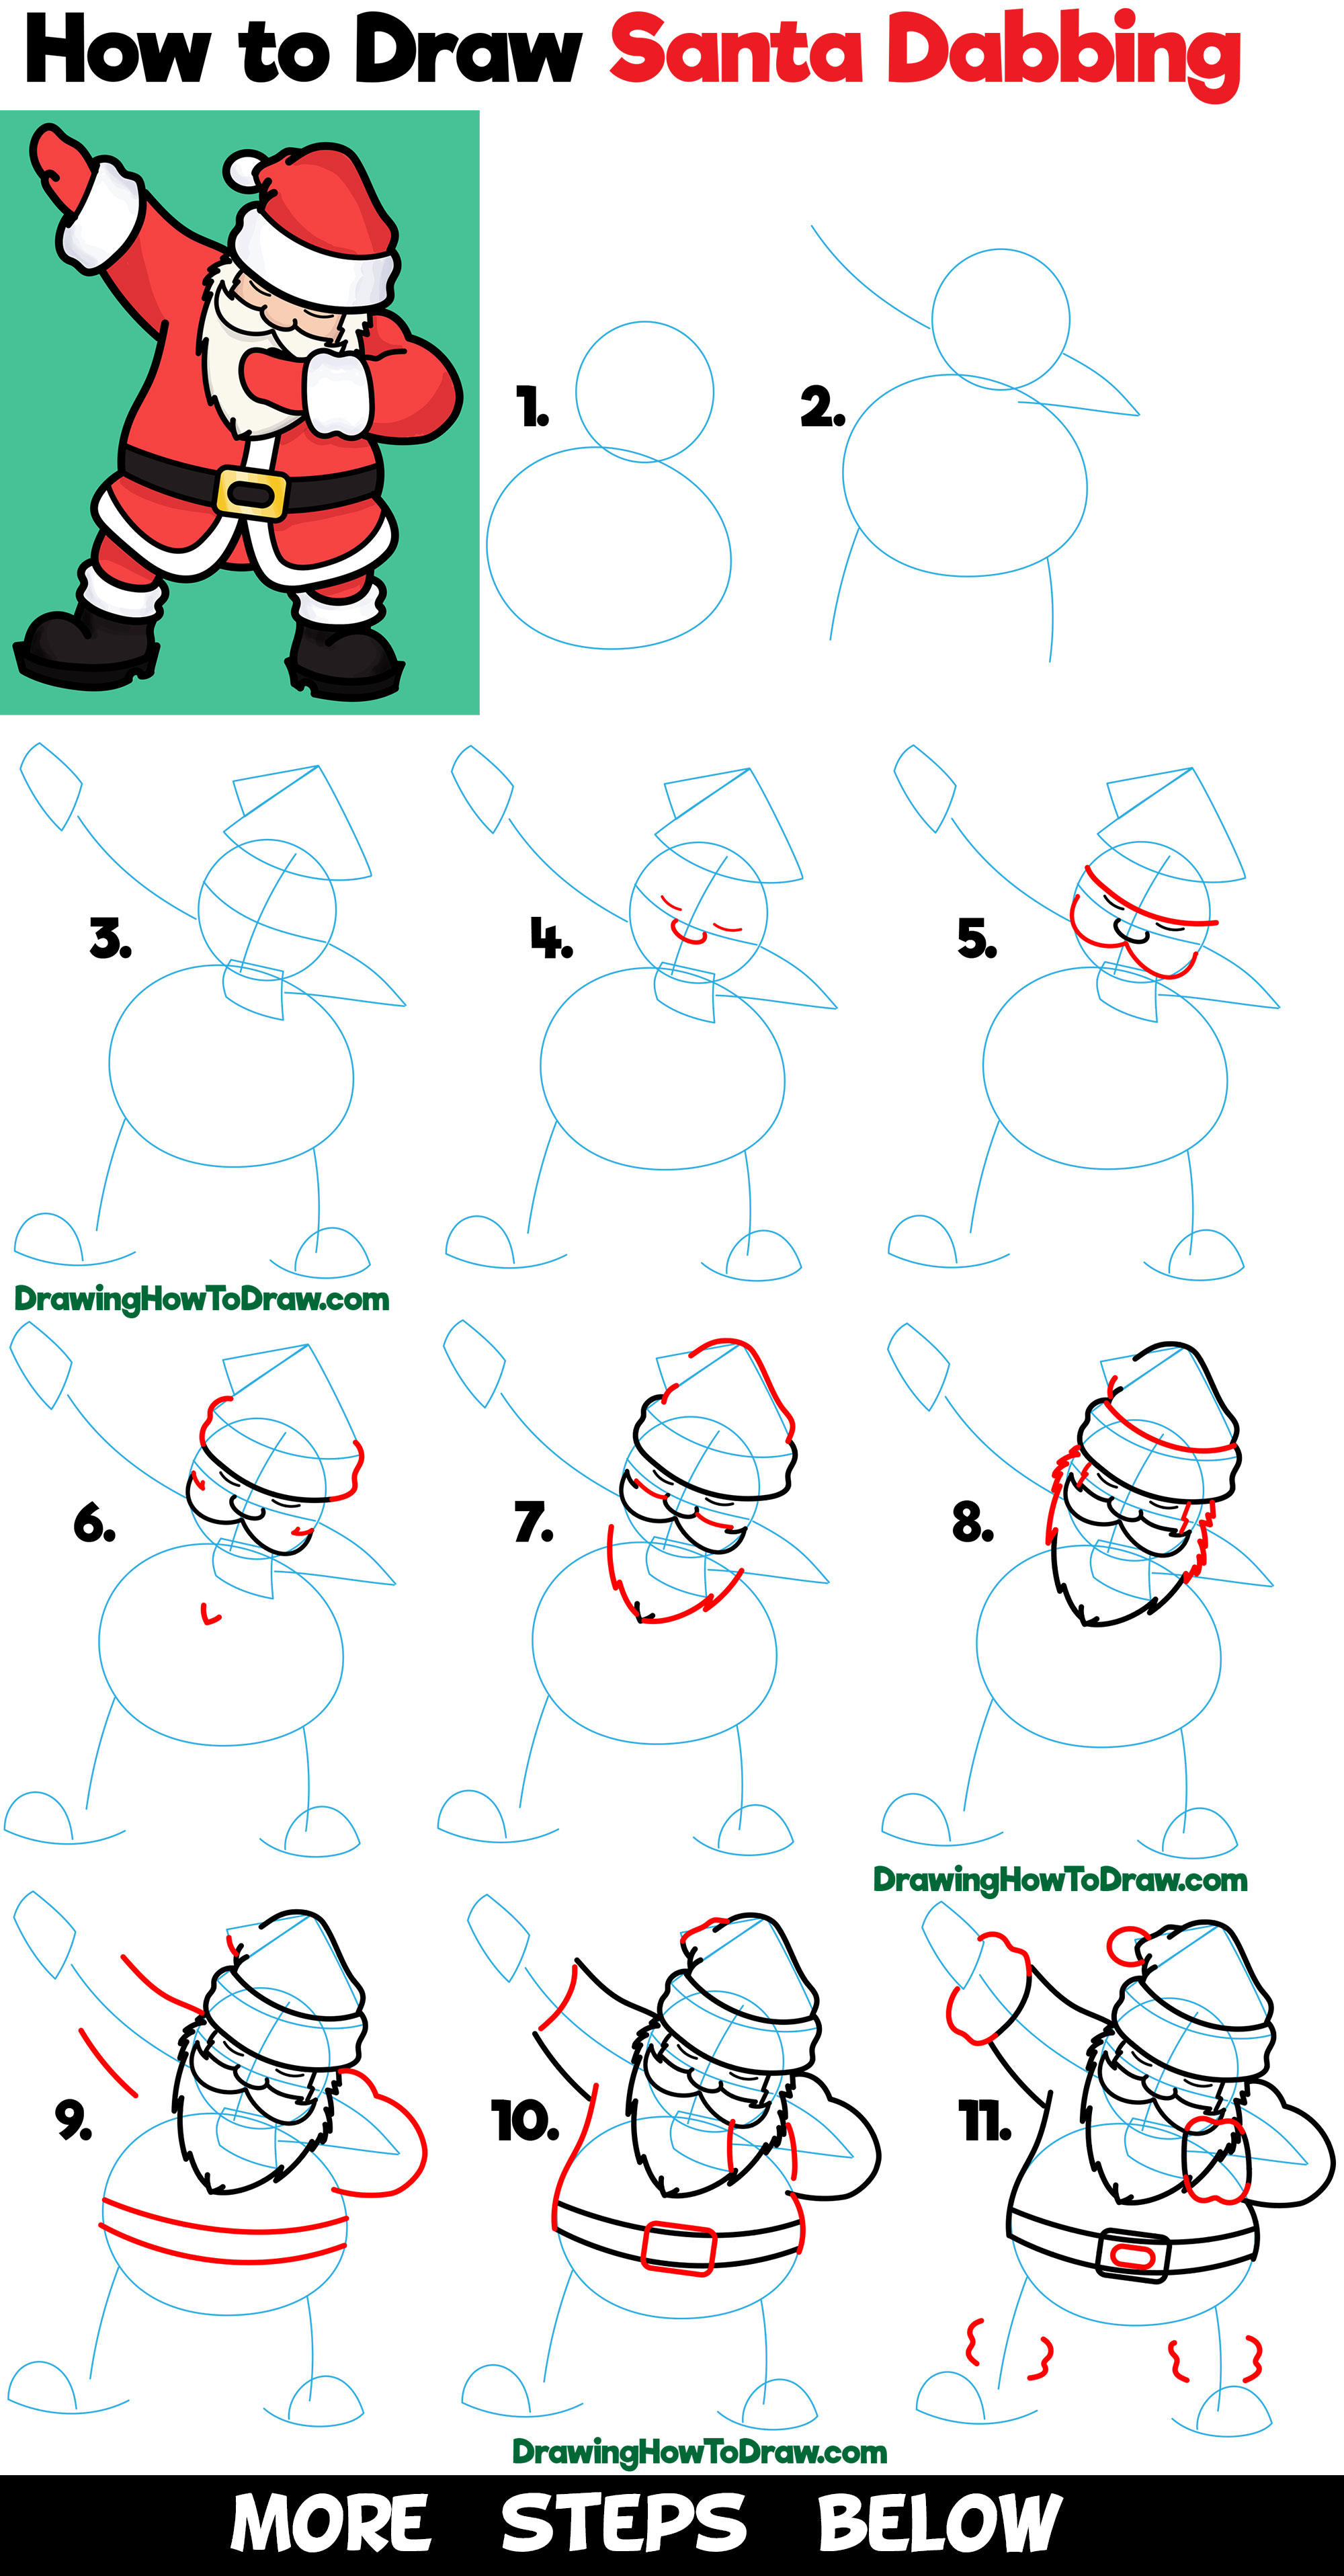 Learn How to Draw Santa Claus Dabbing Easy Steps Drawing Tutorial for Beginners